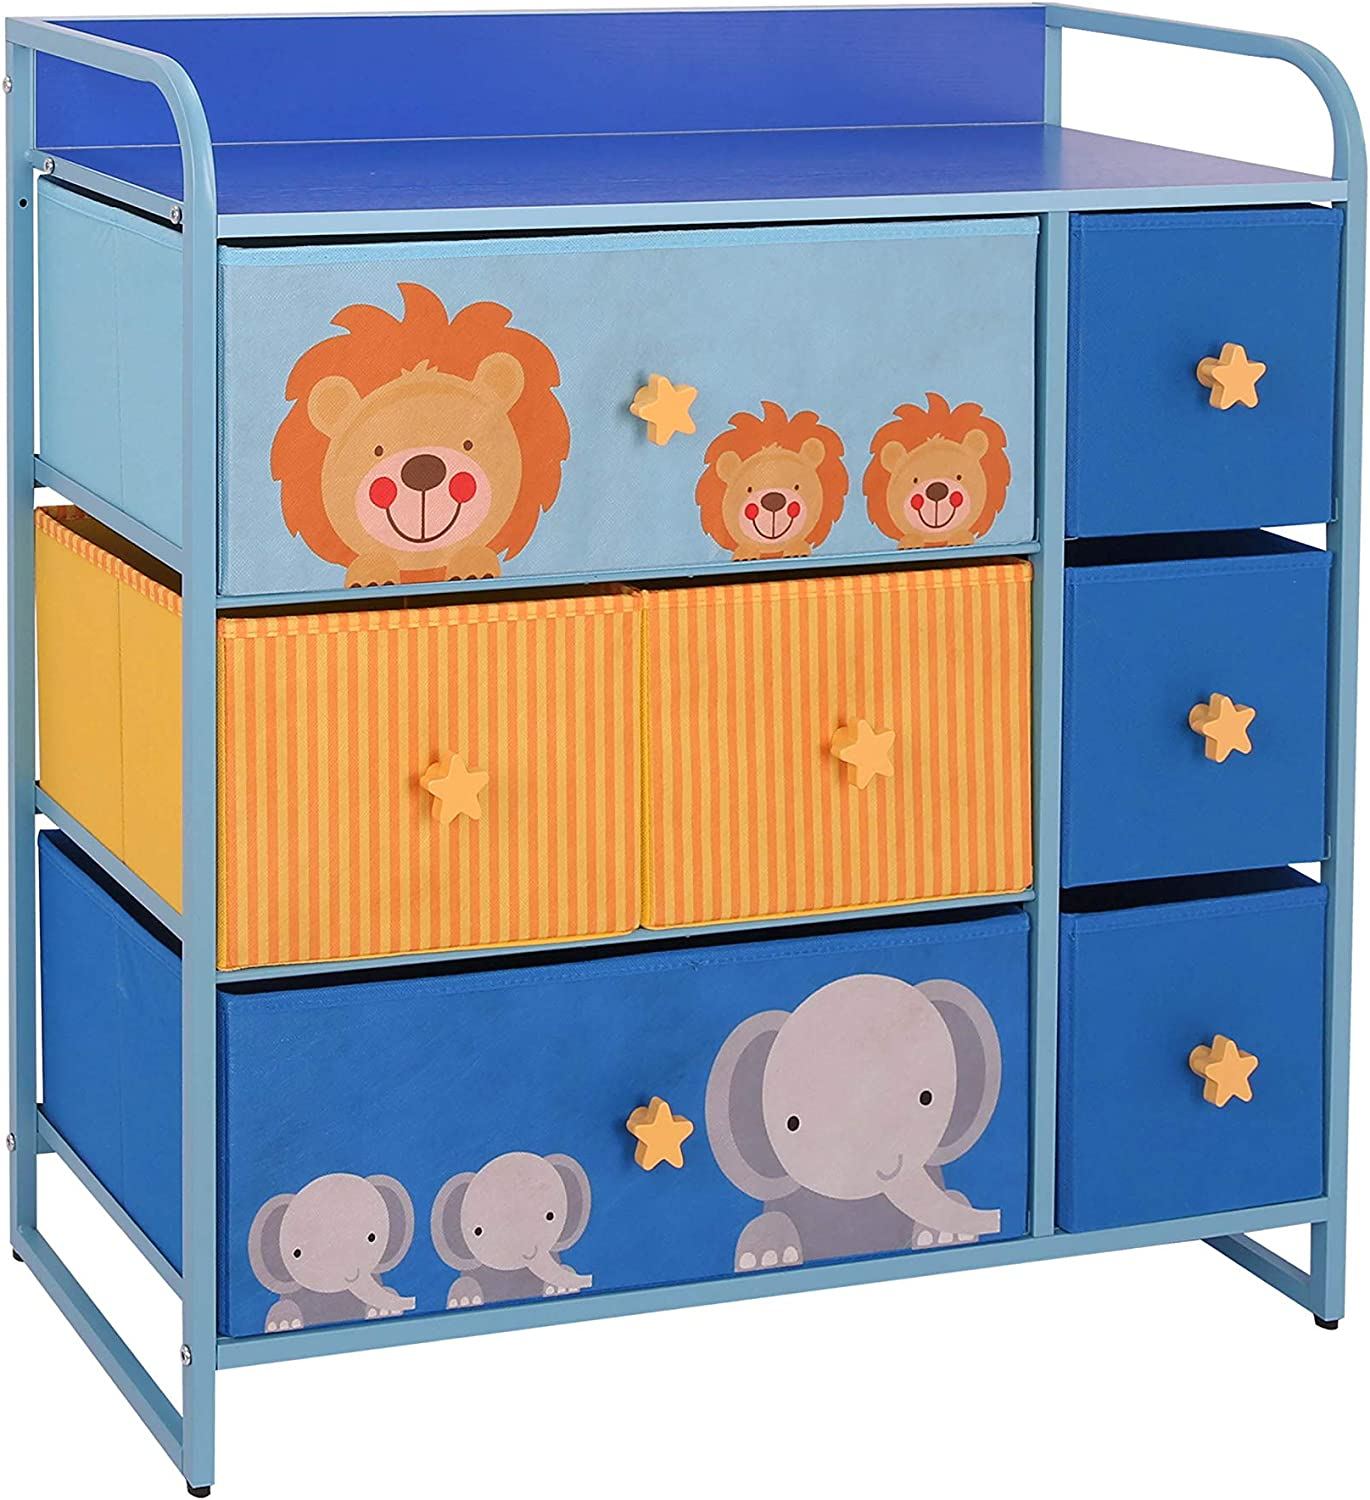 MY LUNA HOME Kids Dresser with 7 Drawers – Nursery Storage & Organizer Furniture for Children, Toddler, Baby– Heavy Duty, Soft & Easy Pull Fabric Bins for Toys, Clothes, Playroom & Bedroom - Blue